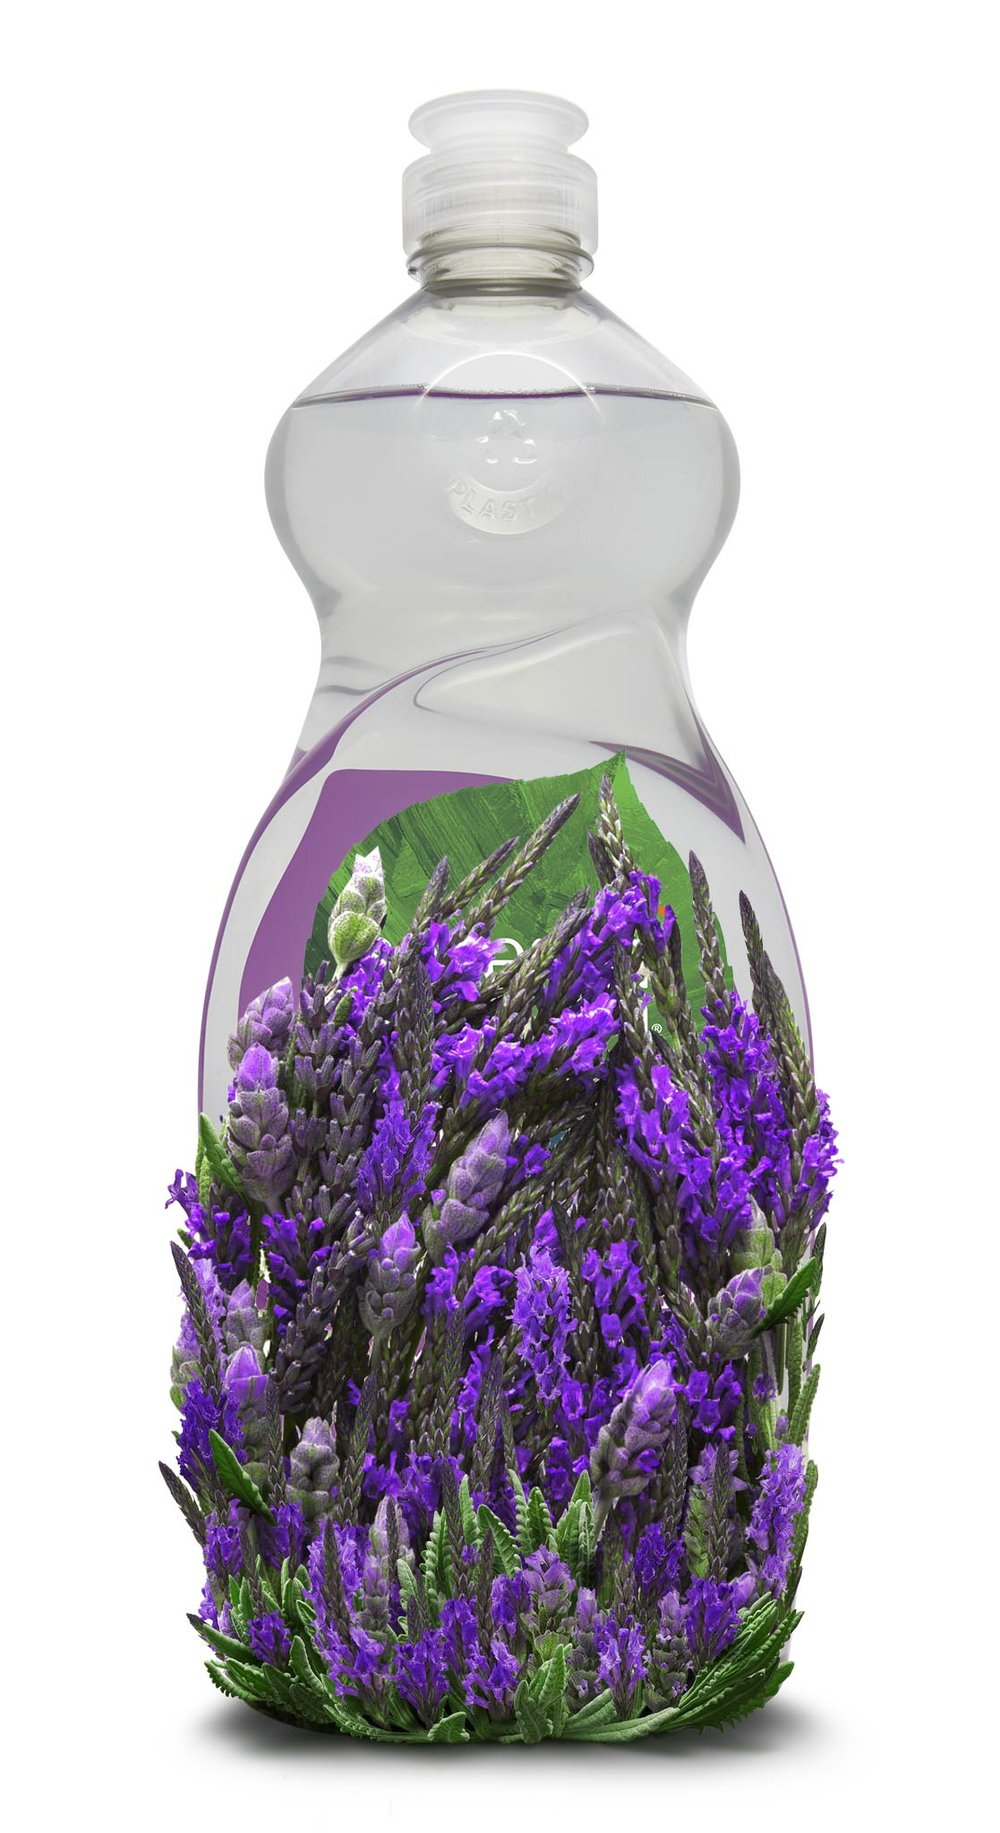 Lavender_DishWashing_16.jpg